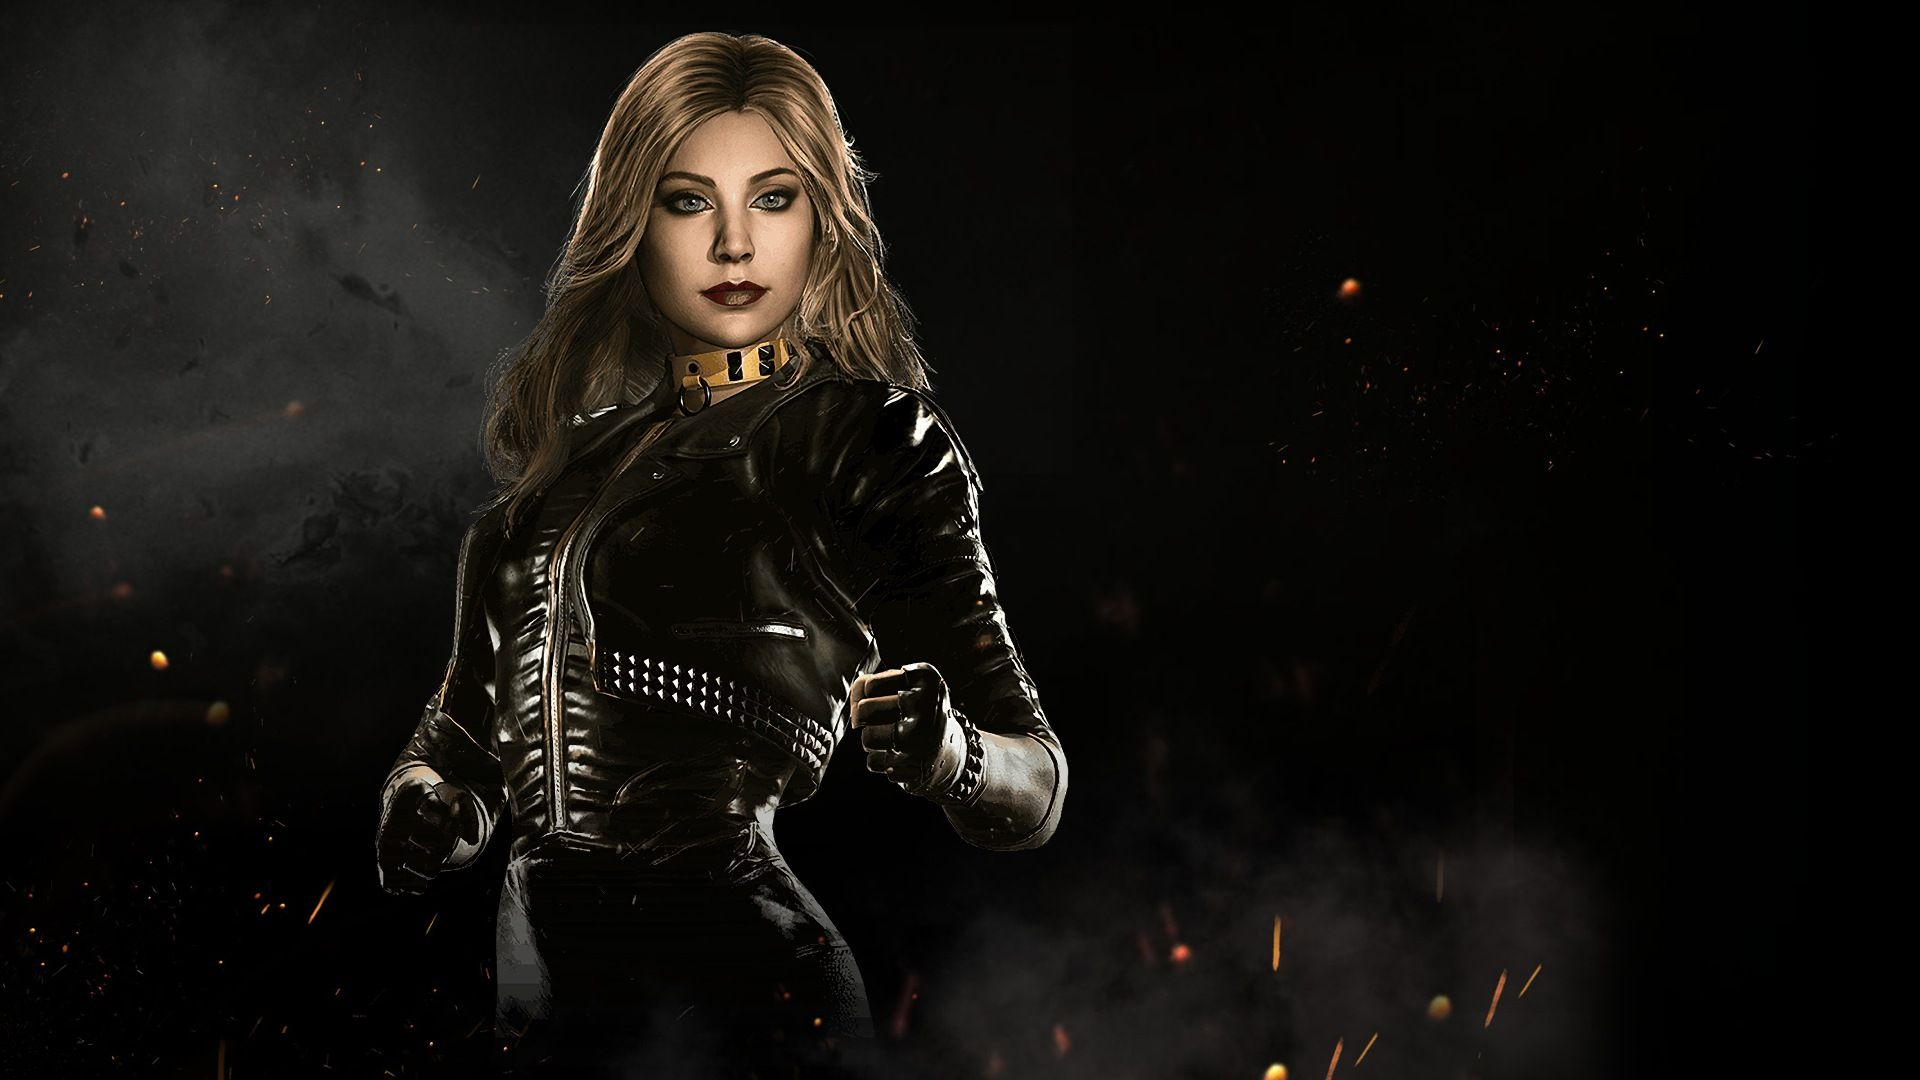 awesome Black Canary Injustice 2 Game 1920x1080 Check more